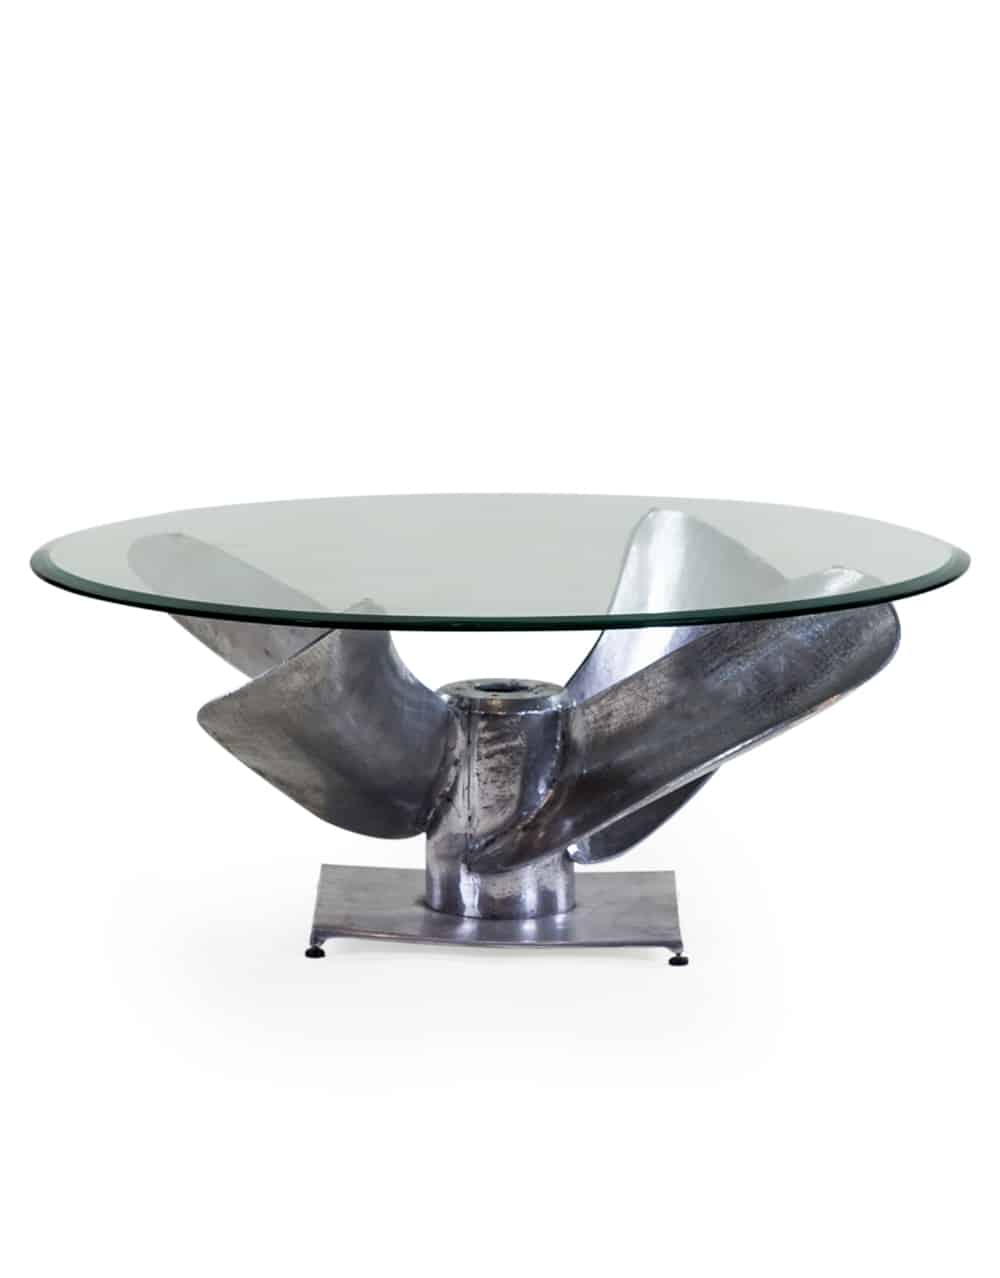 Large antiqued aluminium propeller glass coffee table Large glass coffee table